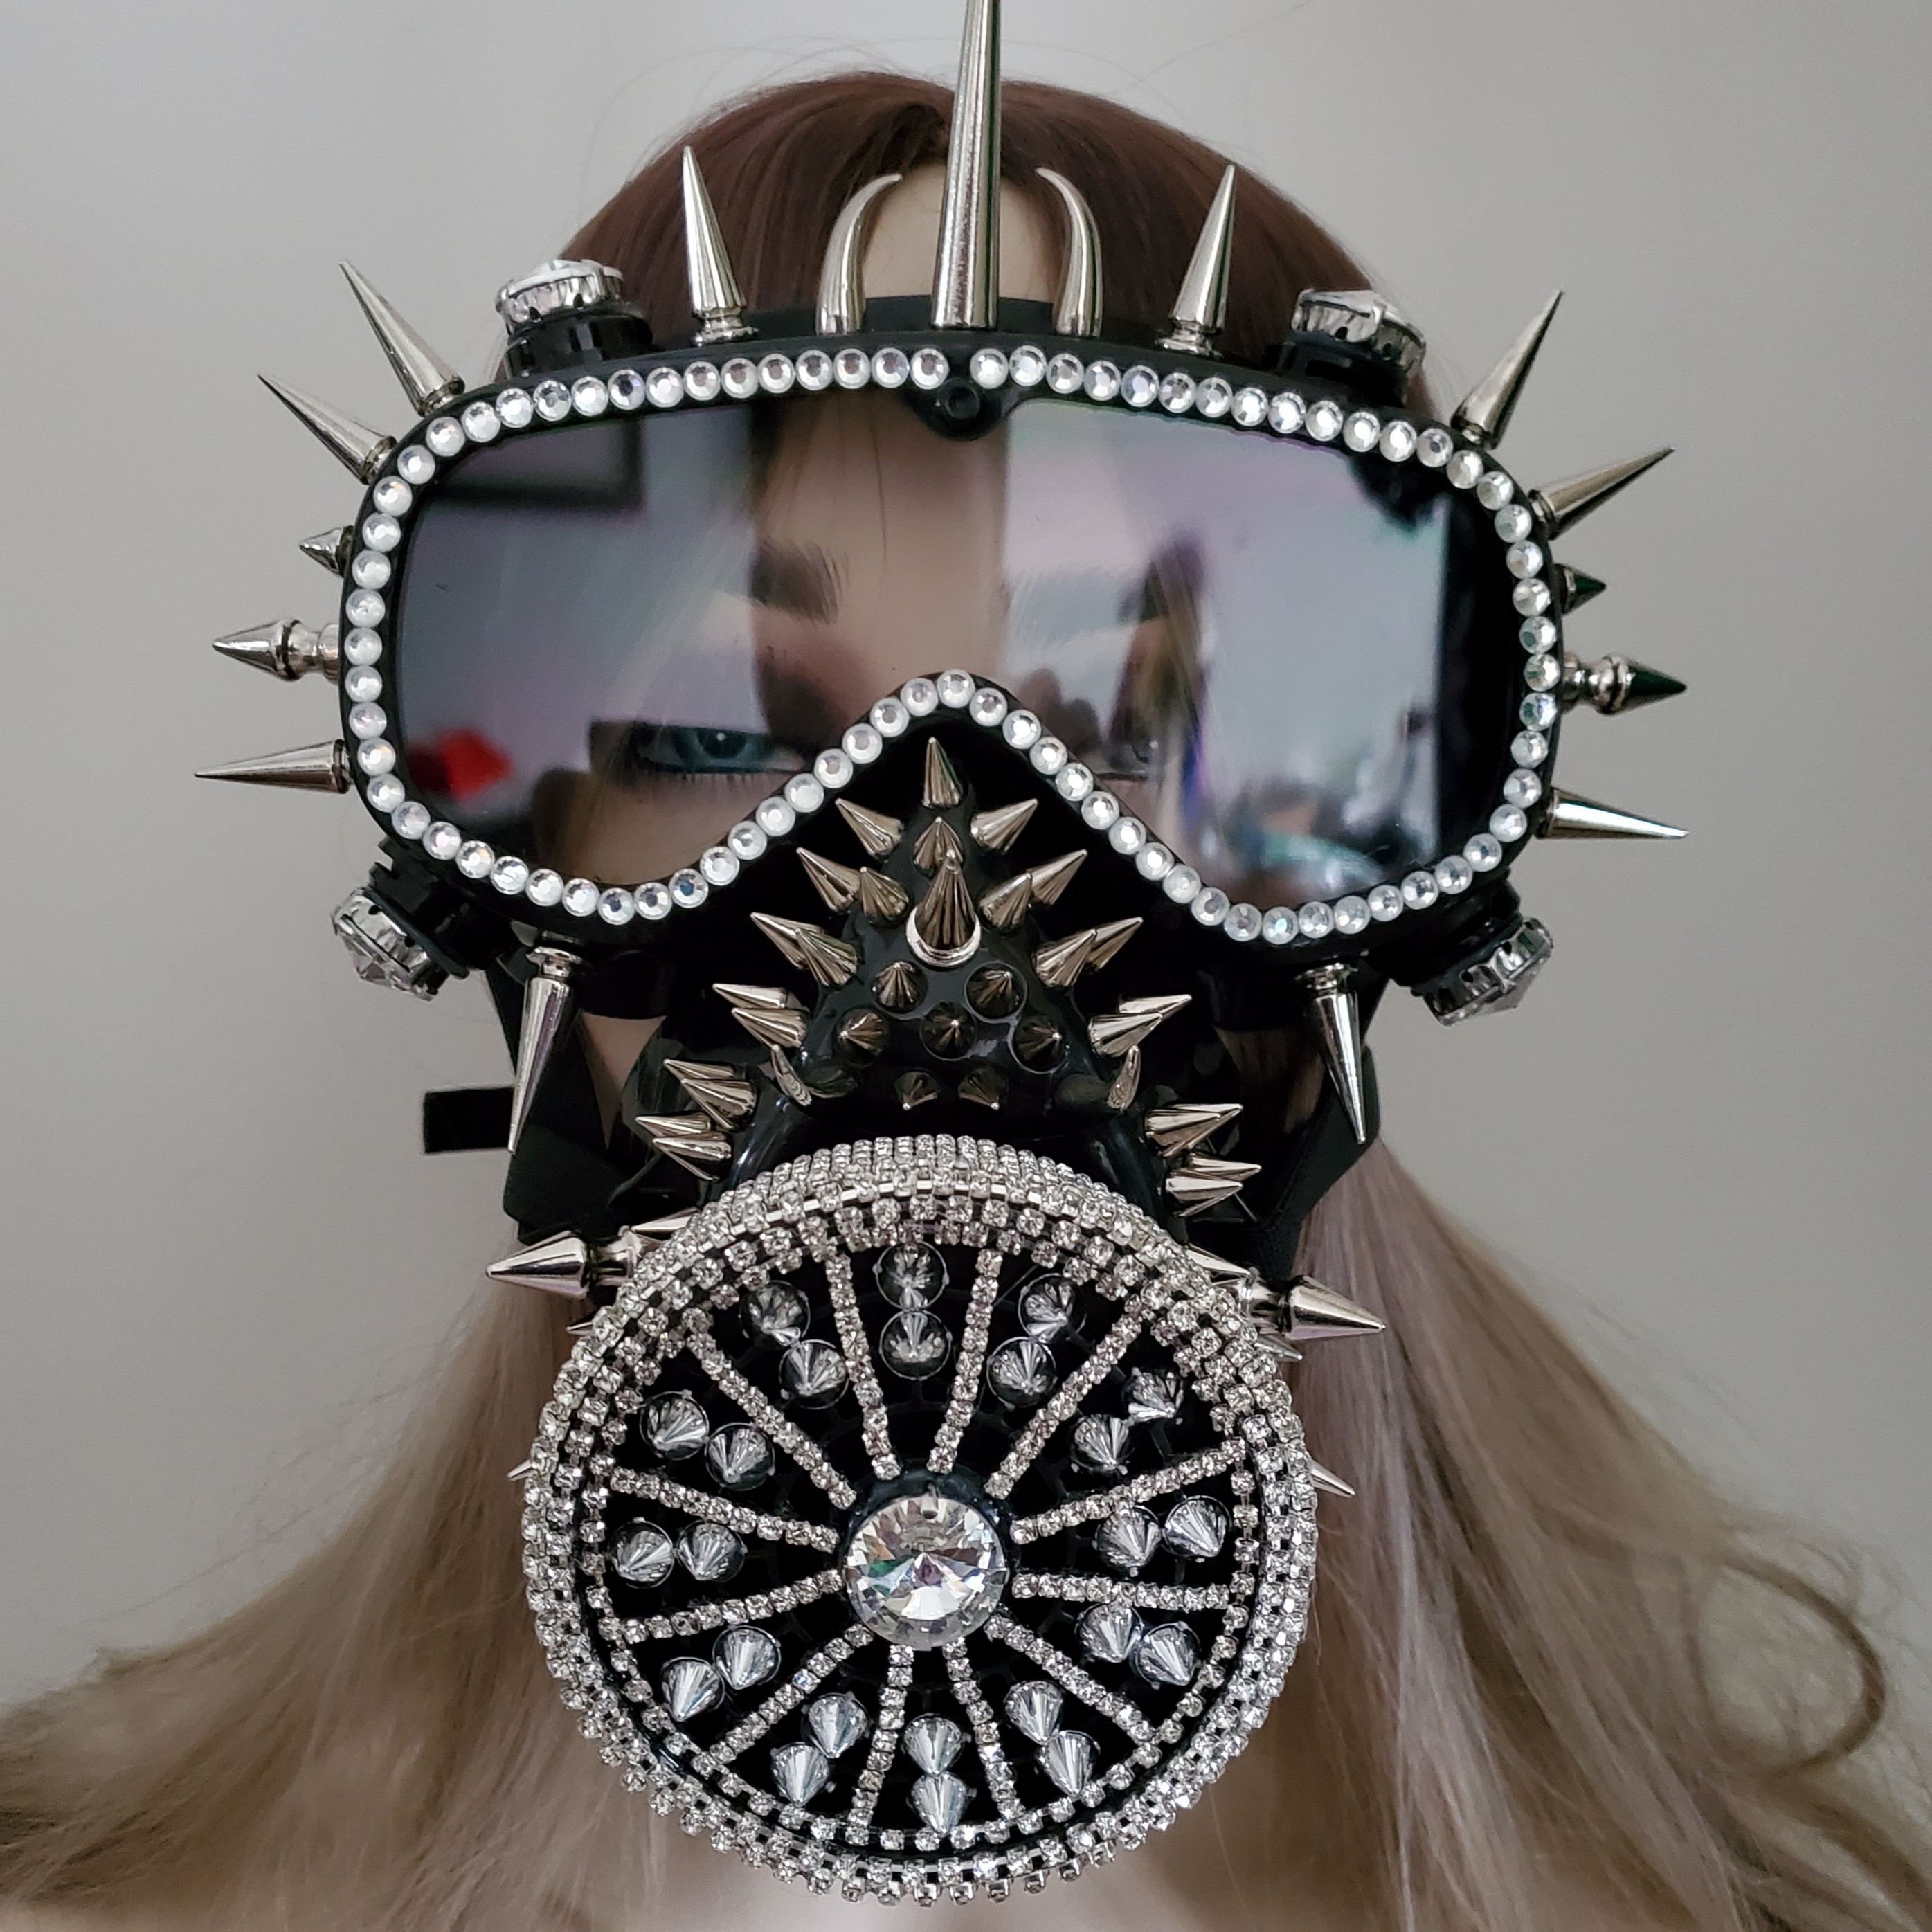 Holographic Rhinestones Black Burning Man Goggles Face Dust Gas Mask Steampunk Costumes Festival Rave Clothes Outfits Gear